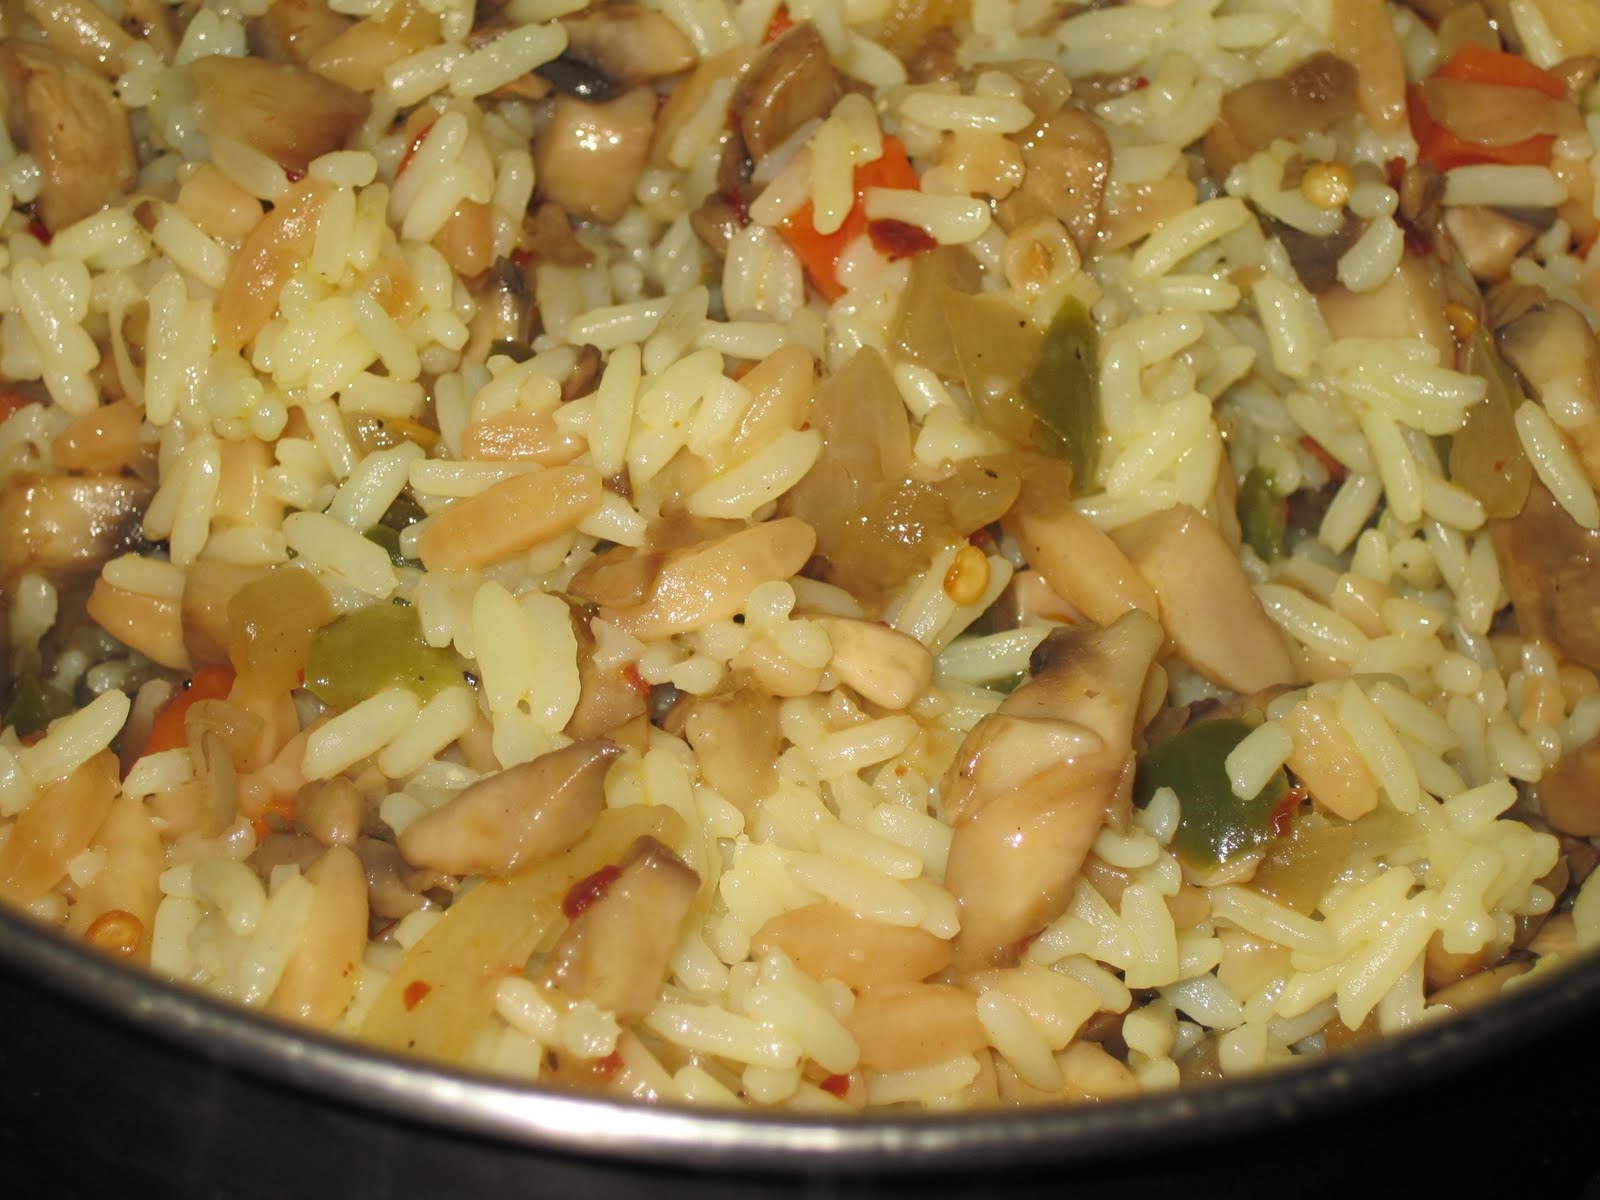 Recipes Re-Mixed: Vegetable Rice Pilaf